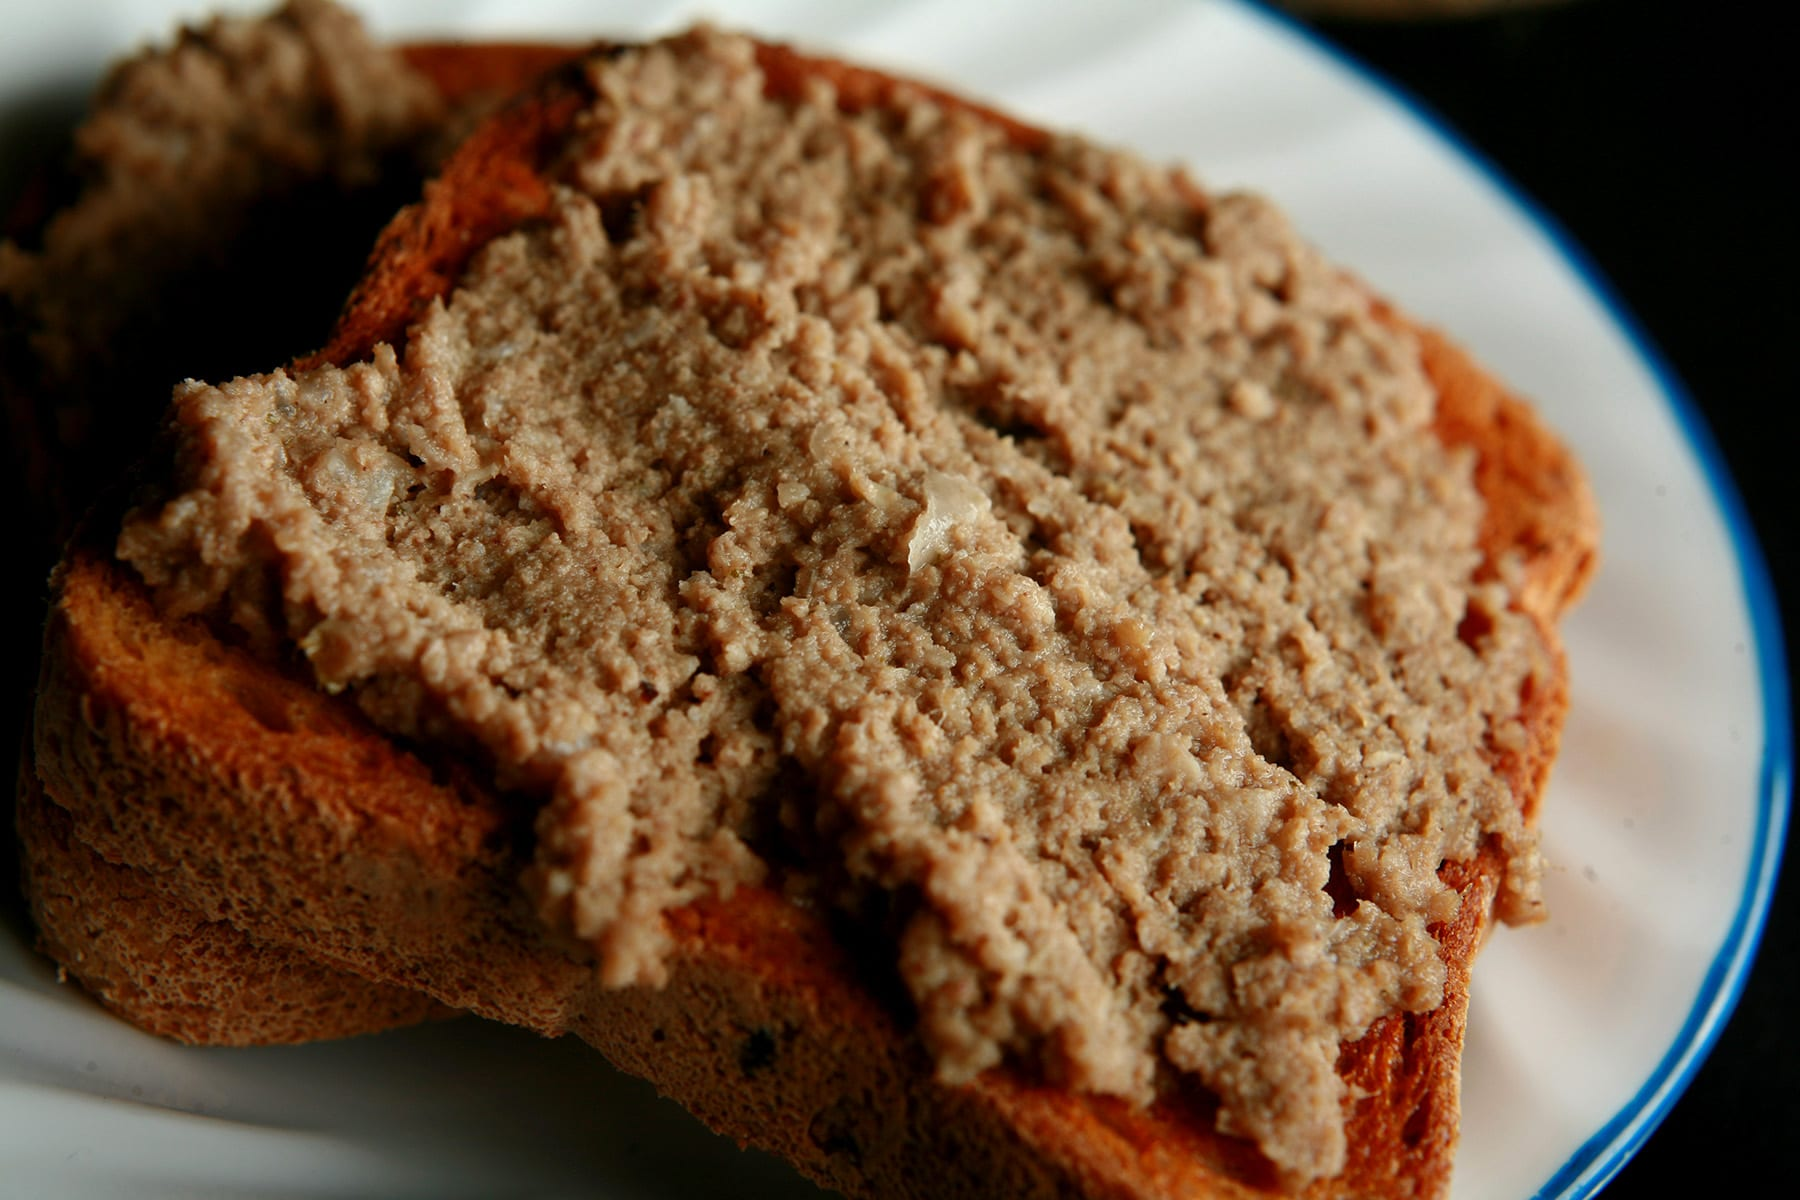 A slice of toast spread with cretons, on a small white plate.